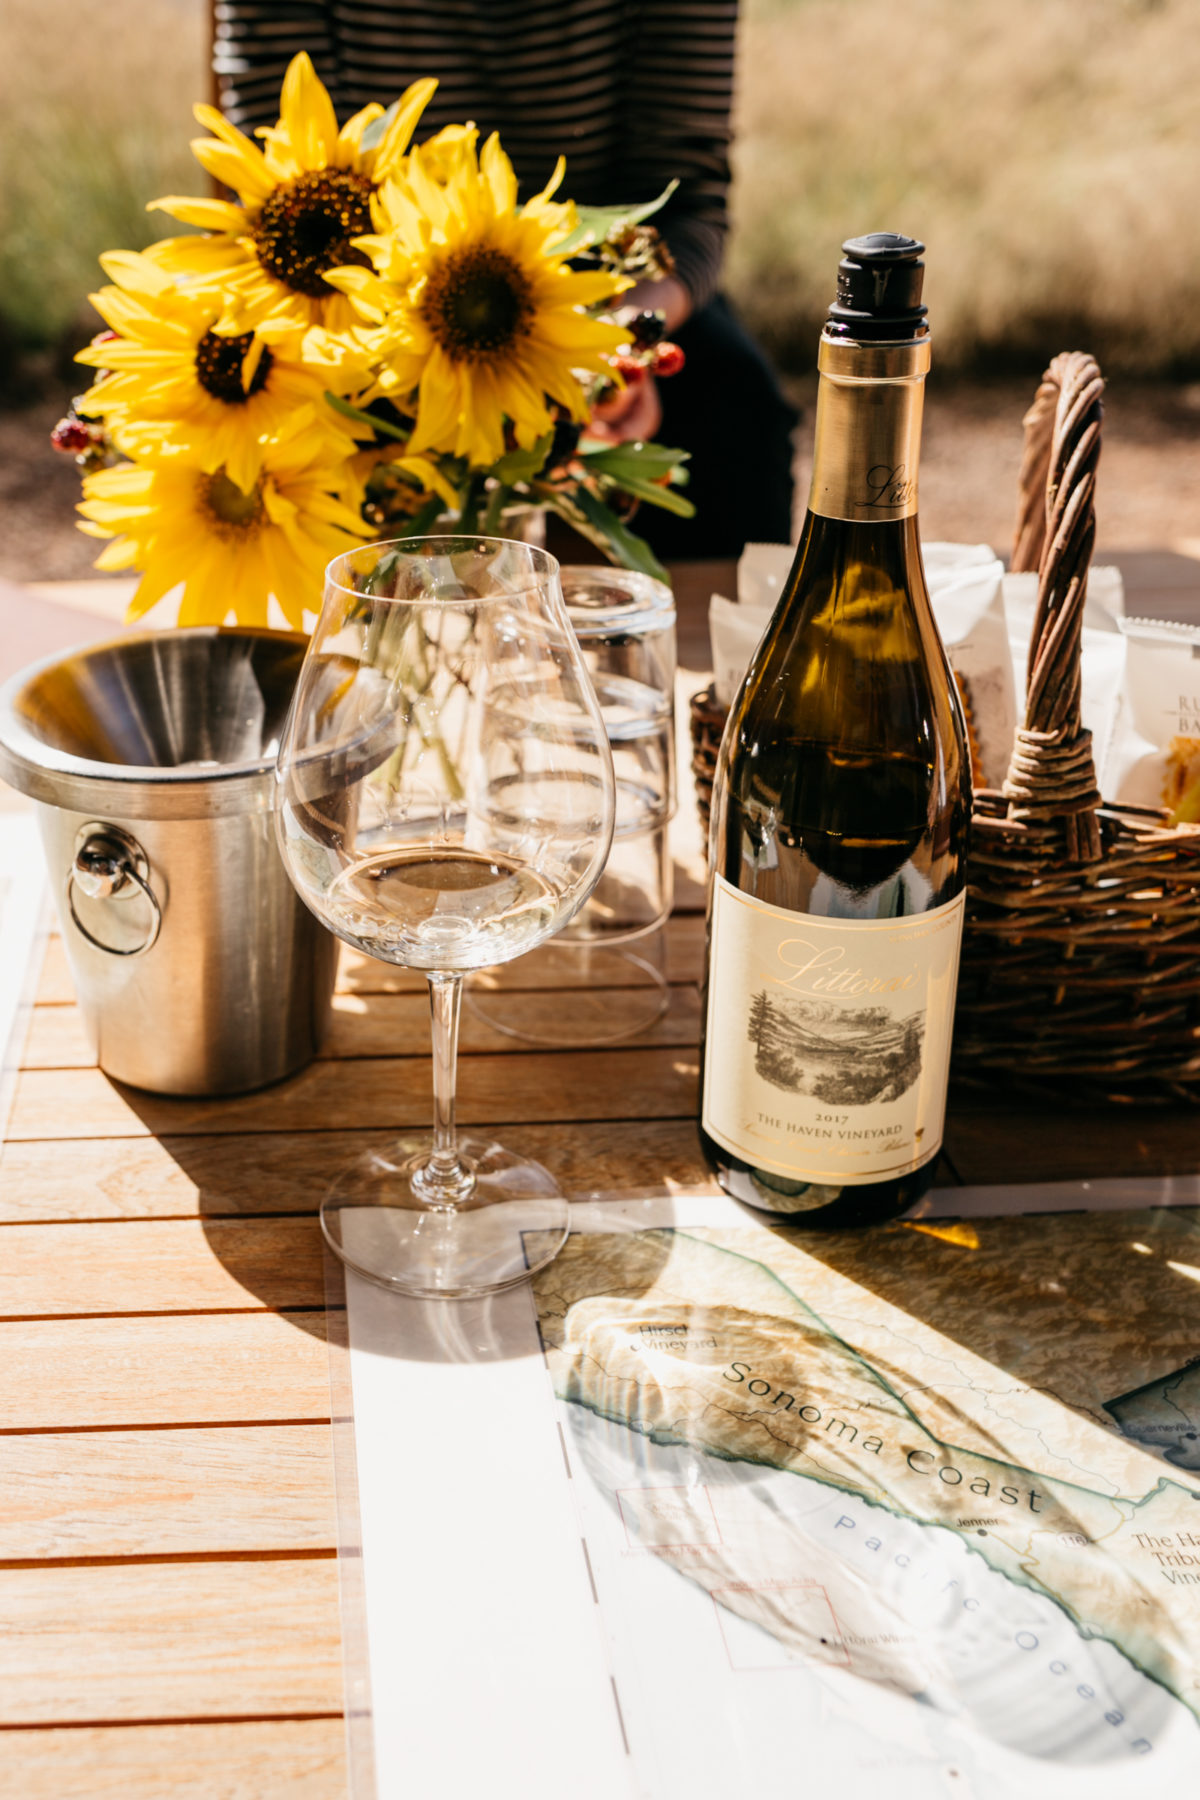 wine in sonoma for the wine country travel guide